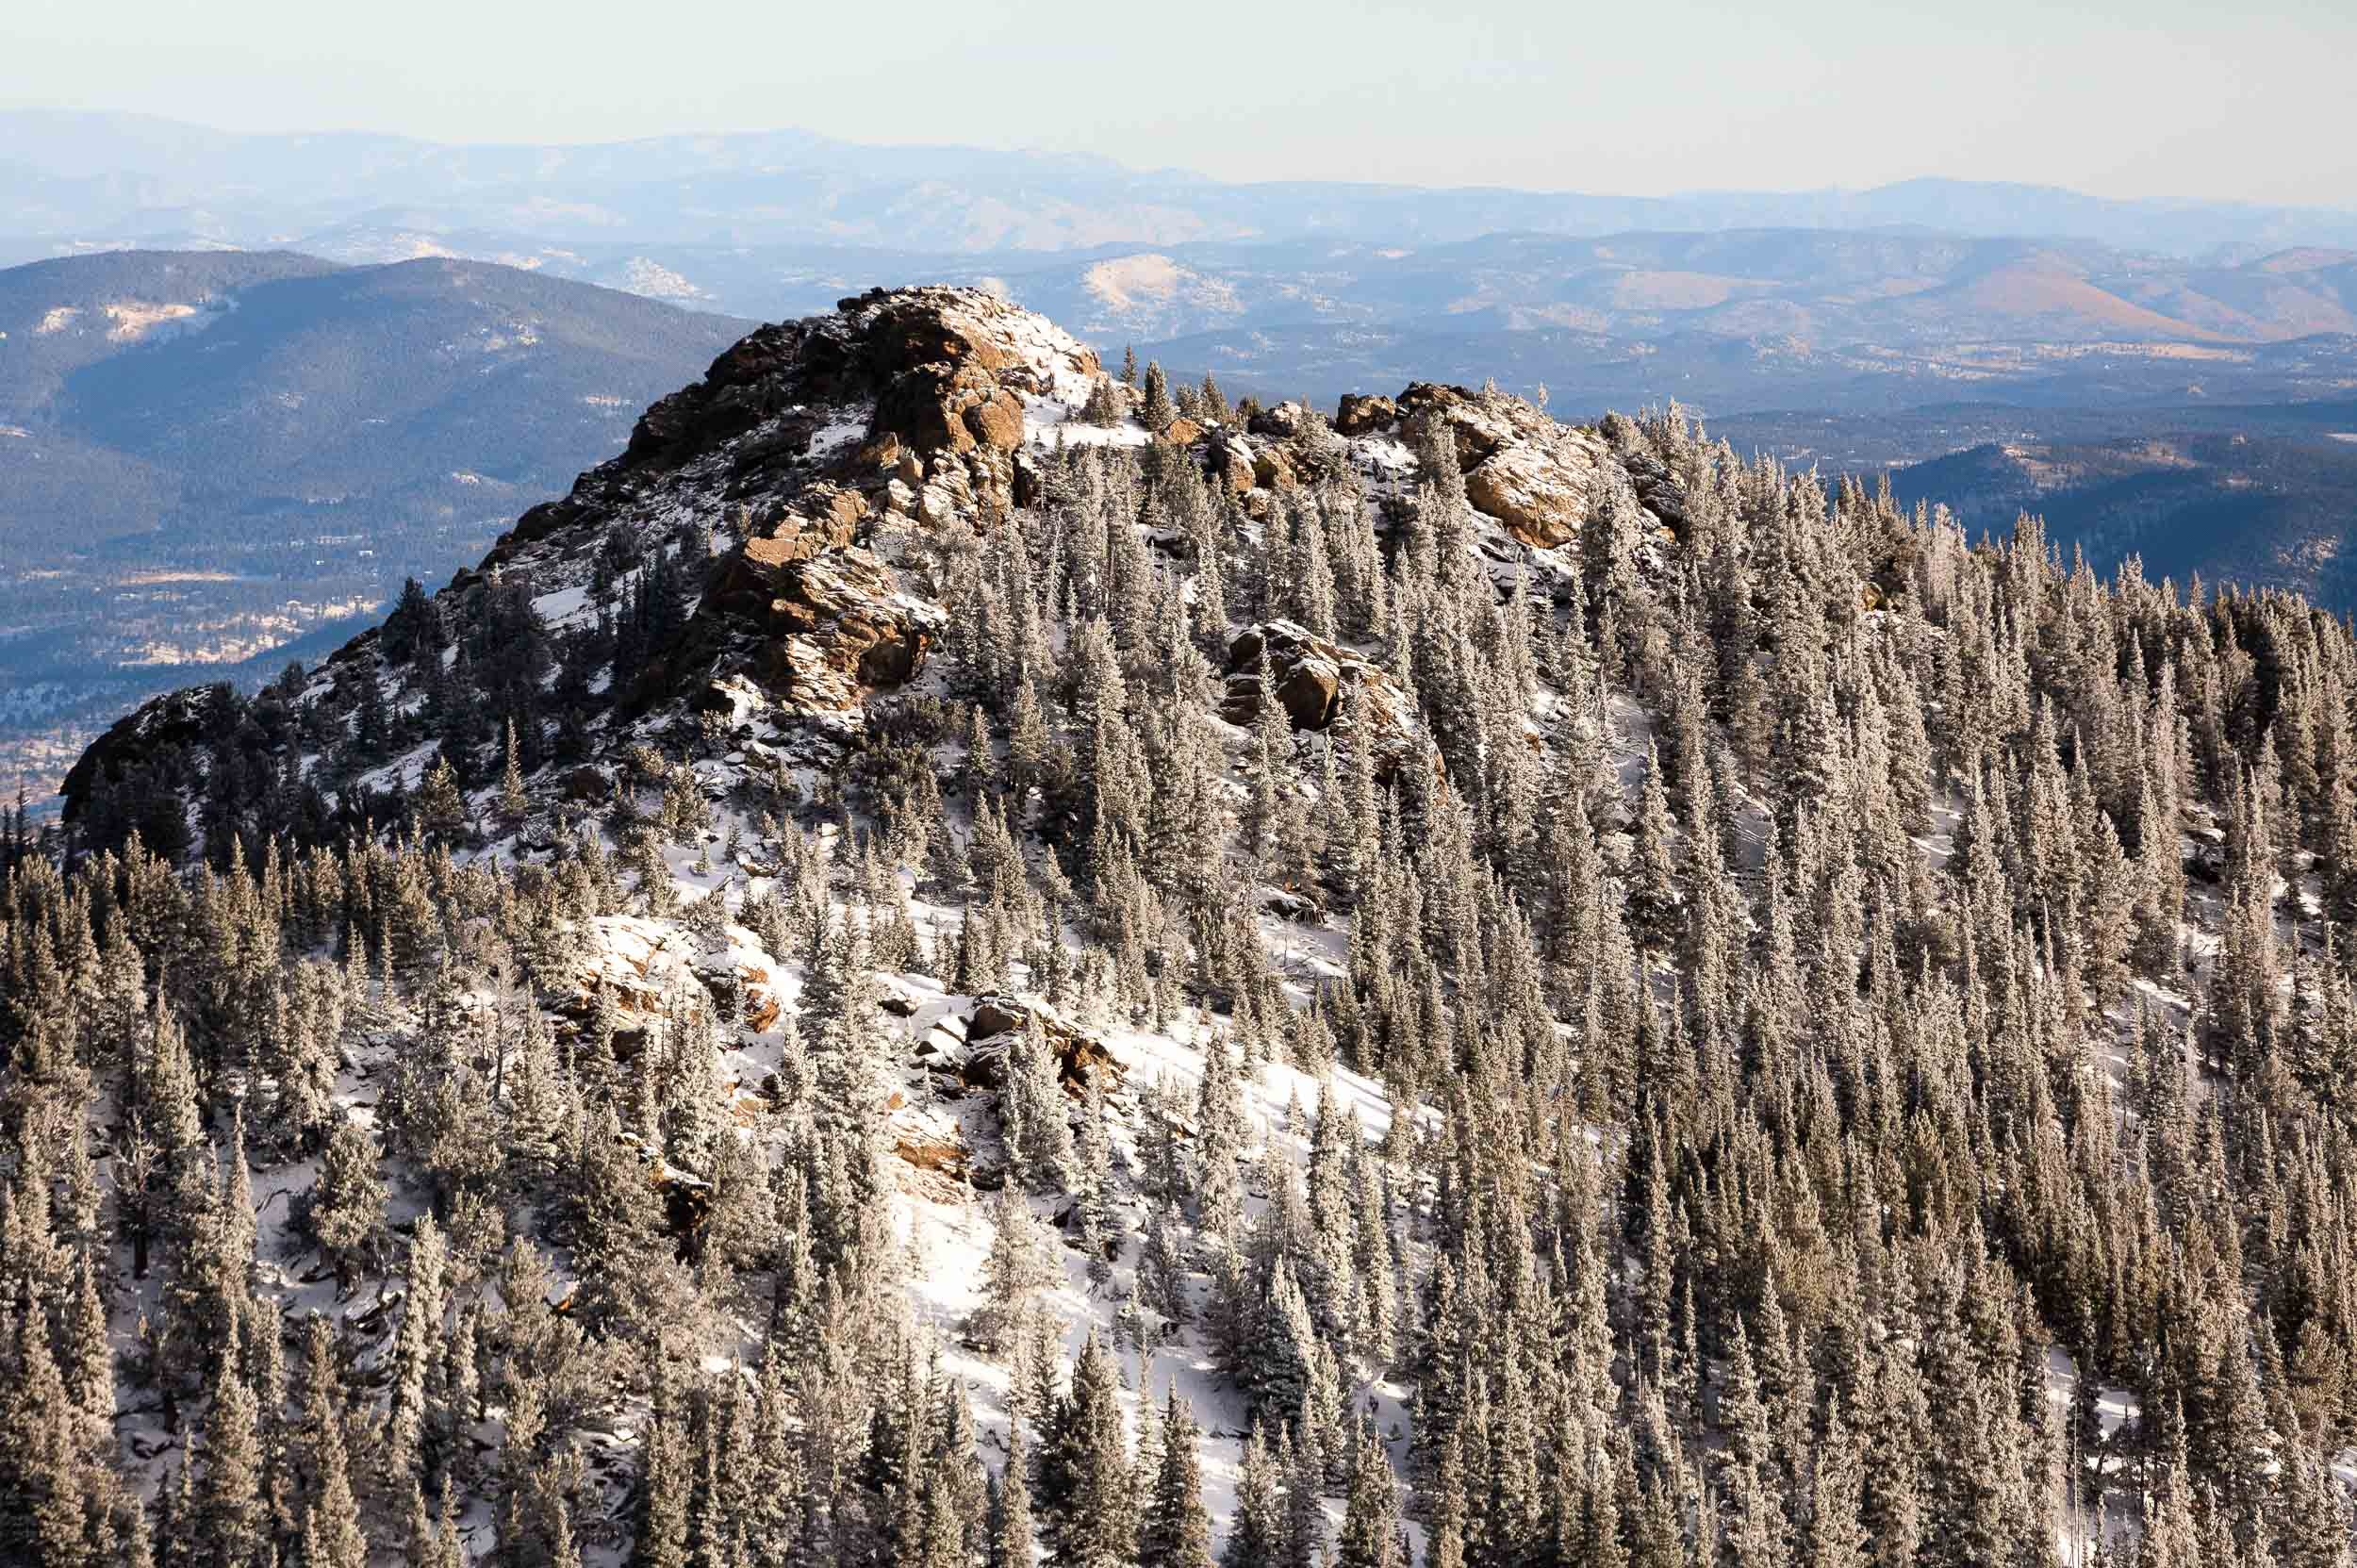 An aerial photography of a snowy peak in the Foothills of the Rocky Mountains near Boulder, Colorado.